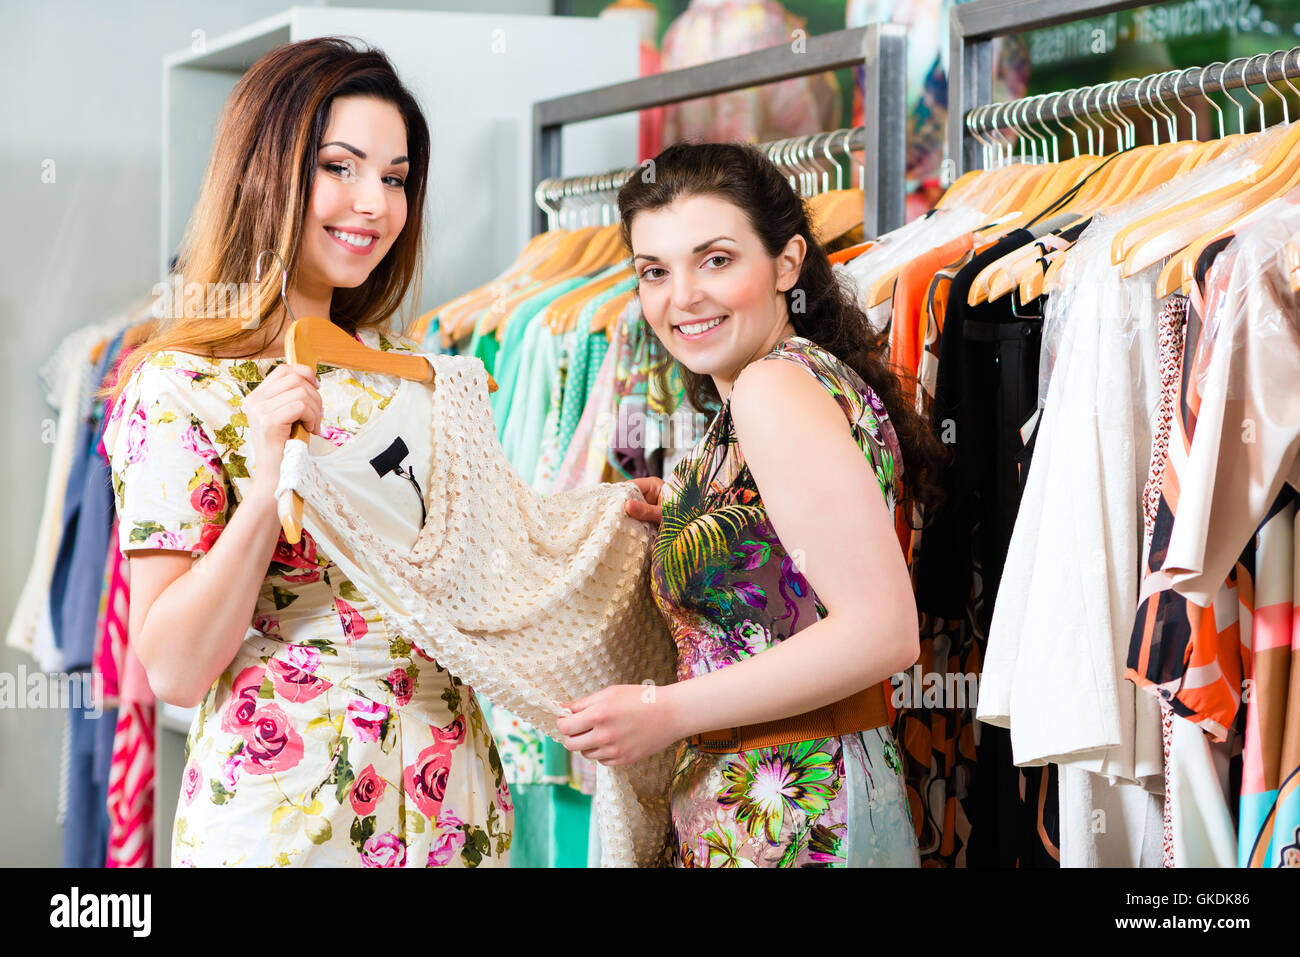 young women shopping in store or boutique Stock Photo